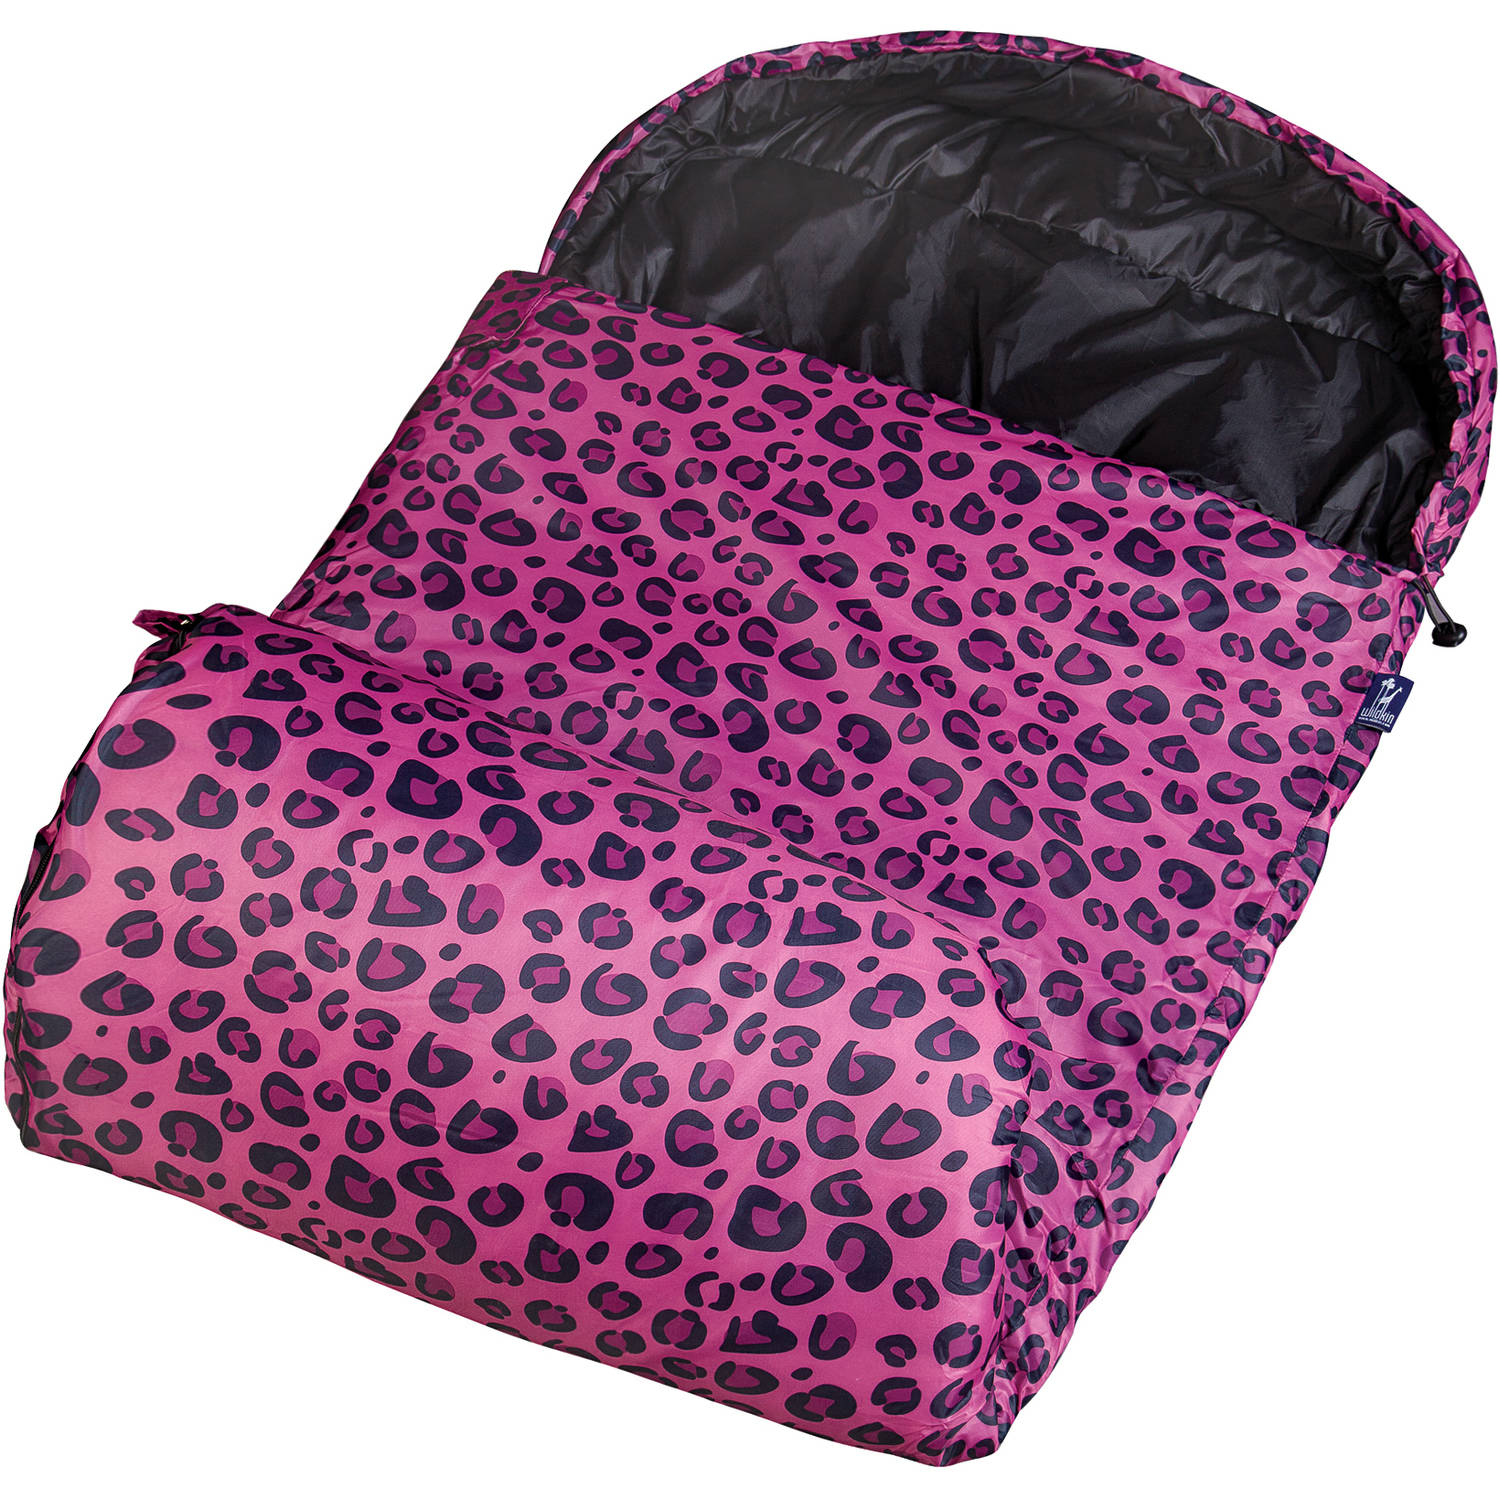 Sleeping bags are made for specific temperature ranges and seasons to keep people warm in a variety of climates. A one season sleeping bag is great for summer and generally features a 4 degrees Celsius or higher temperature rating.